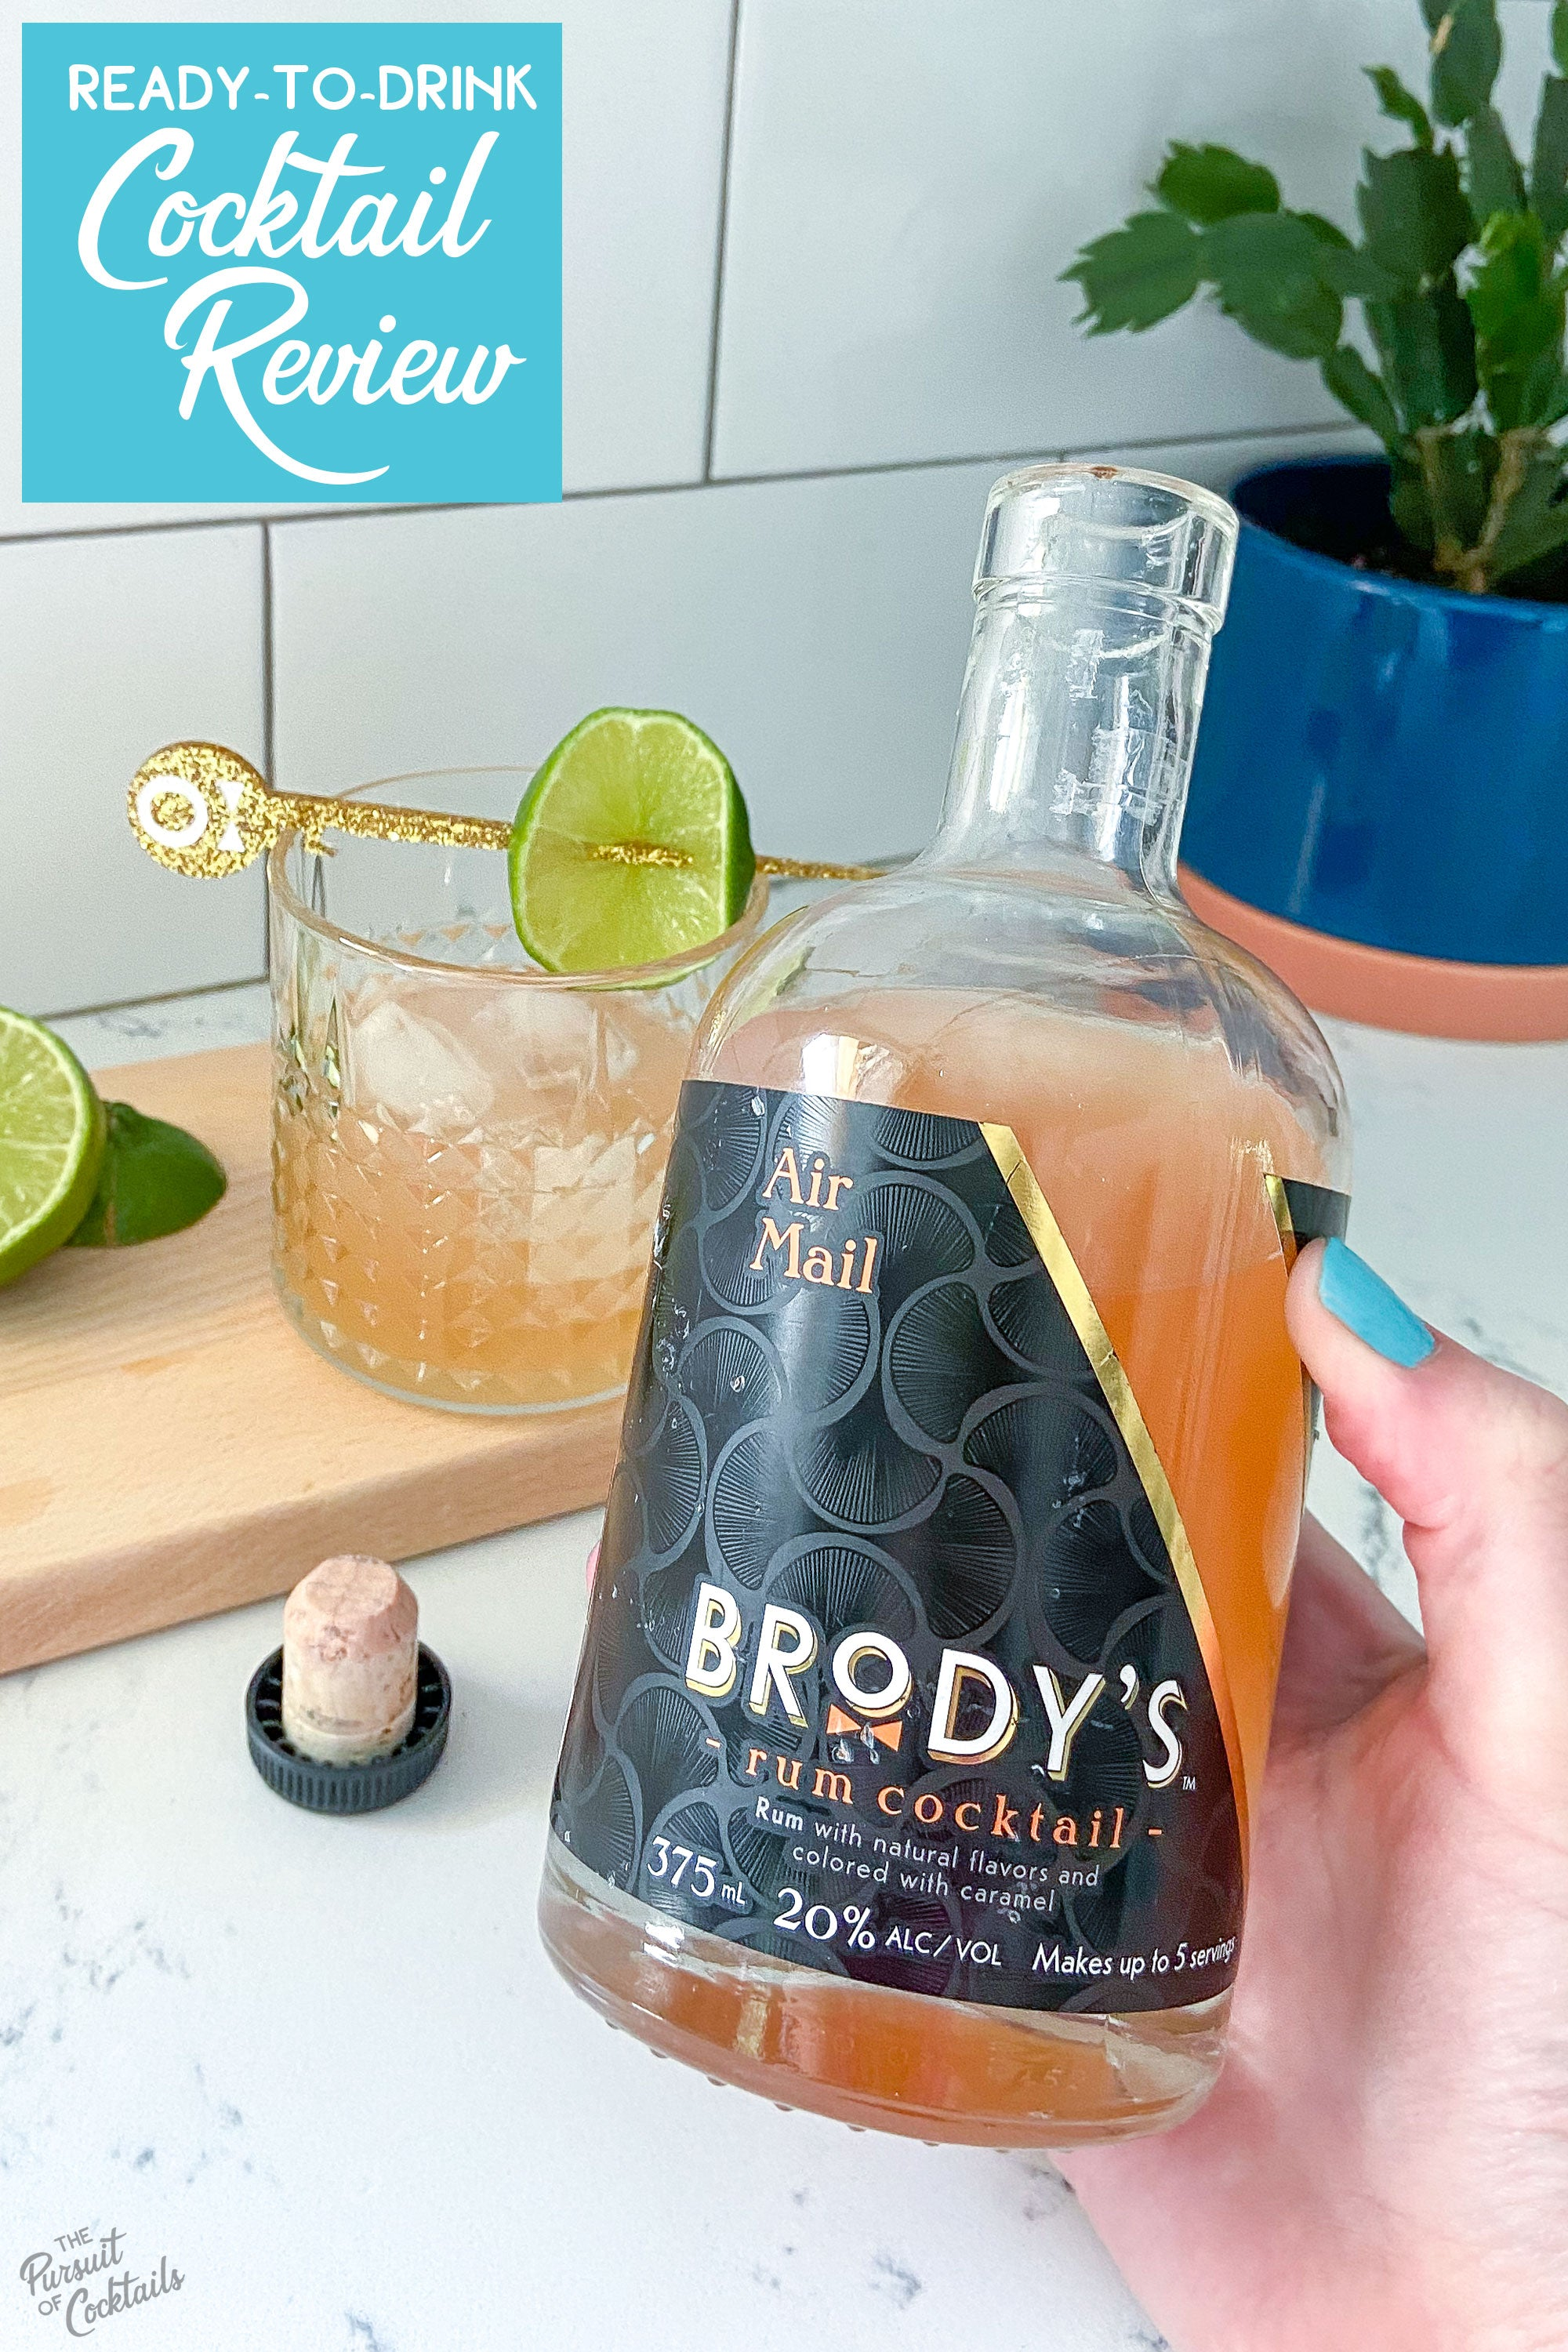 Brody's ready-to-drink cocktails reviewed by The Pursuit of Cocktails